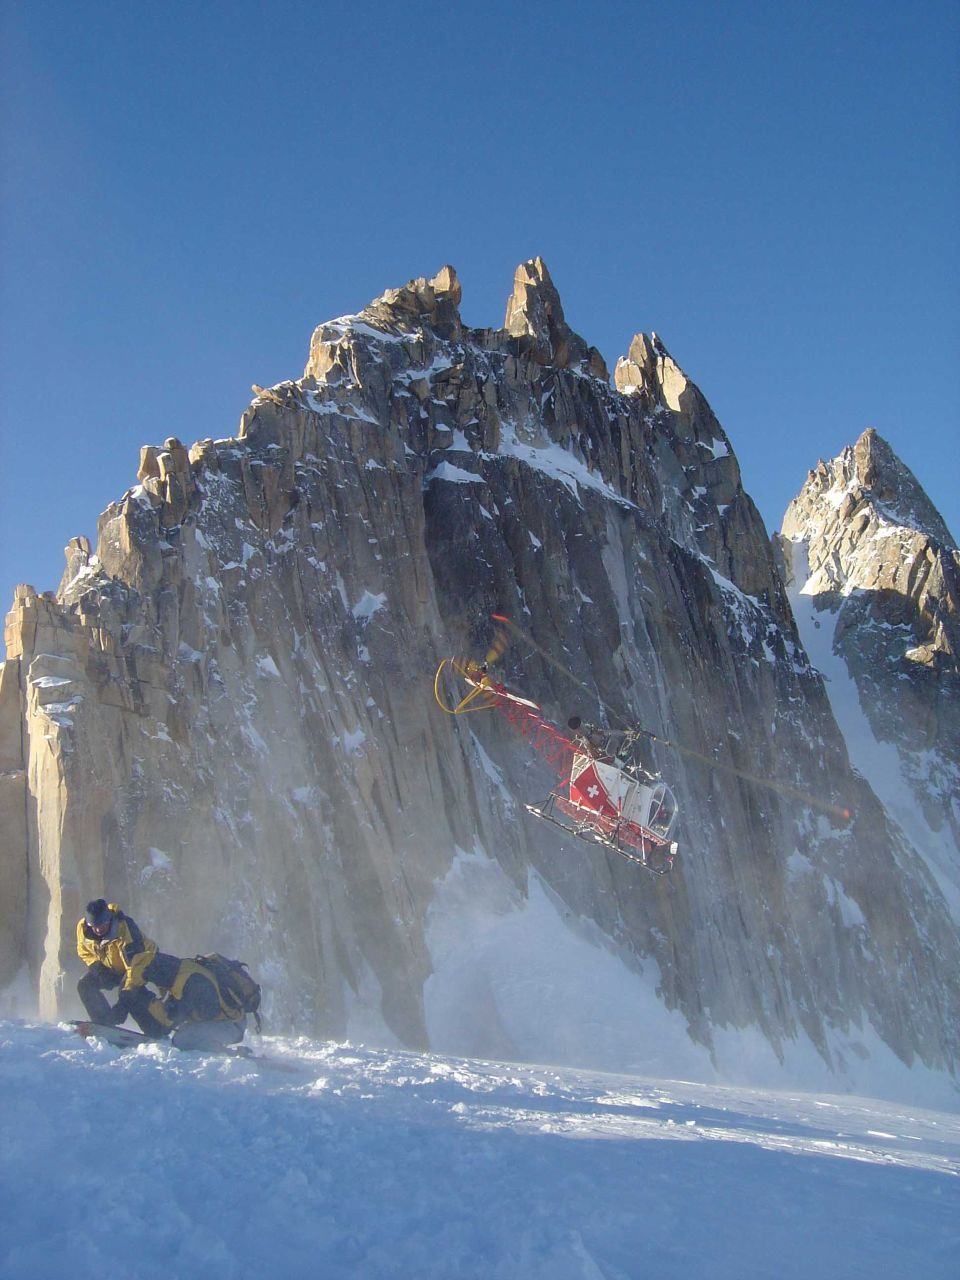 Helicopter hovering above snowy mountain